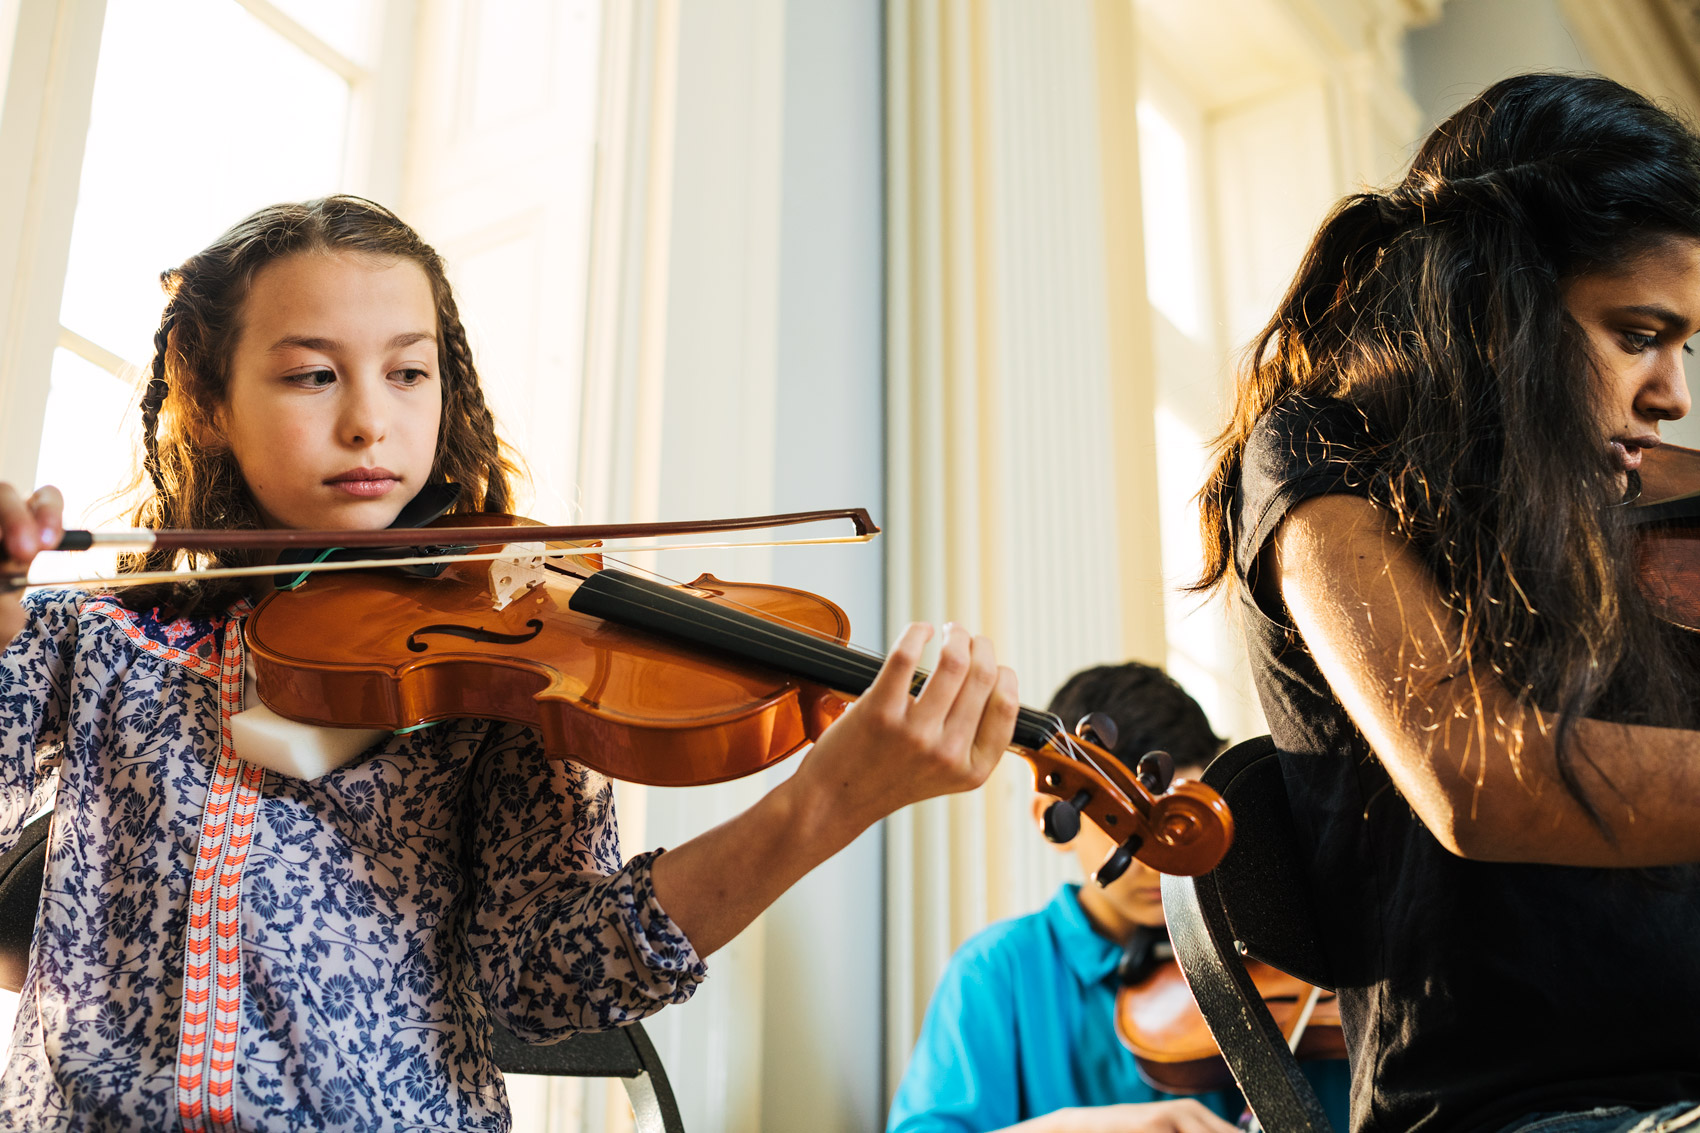 adolescent kids playing violins inside by window, washington dc commercial photography